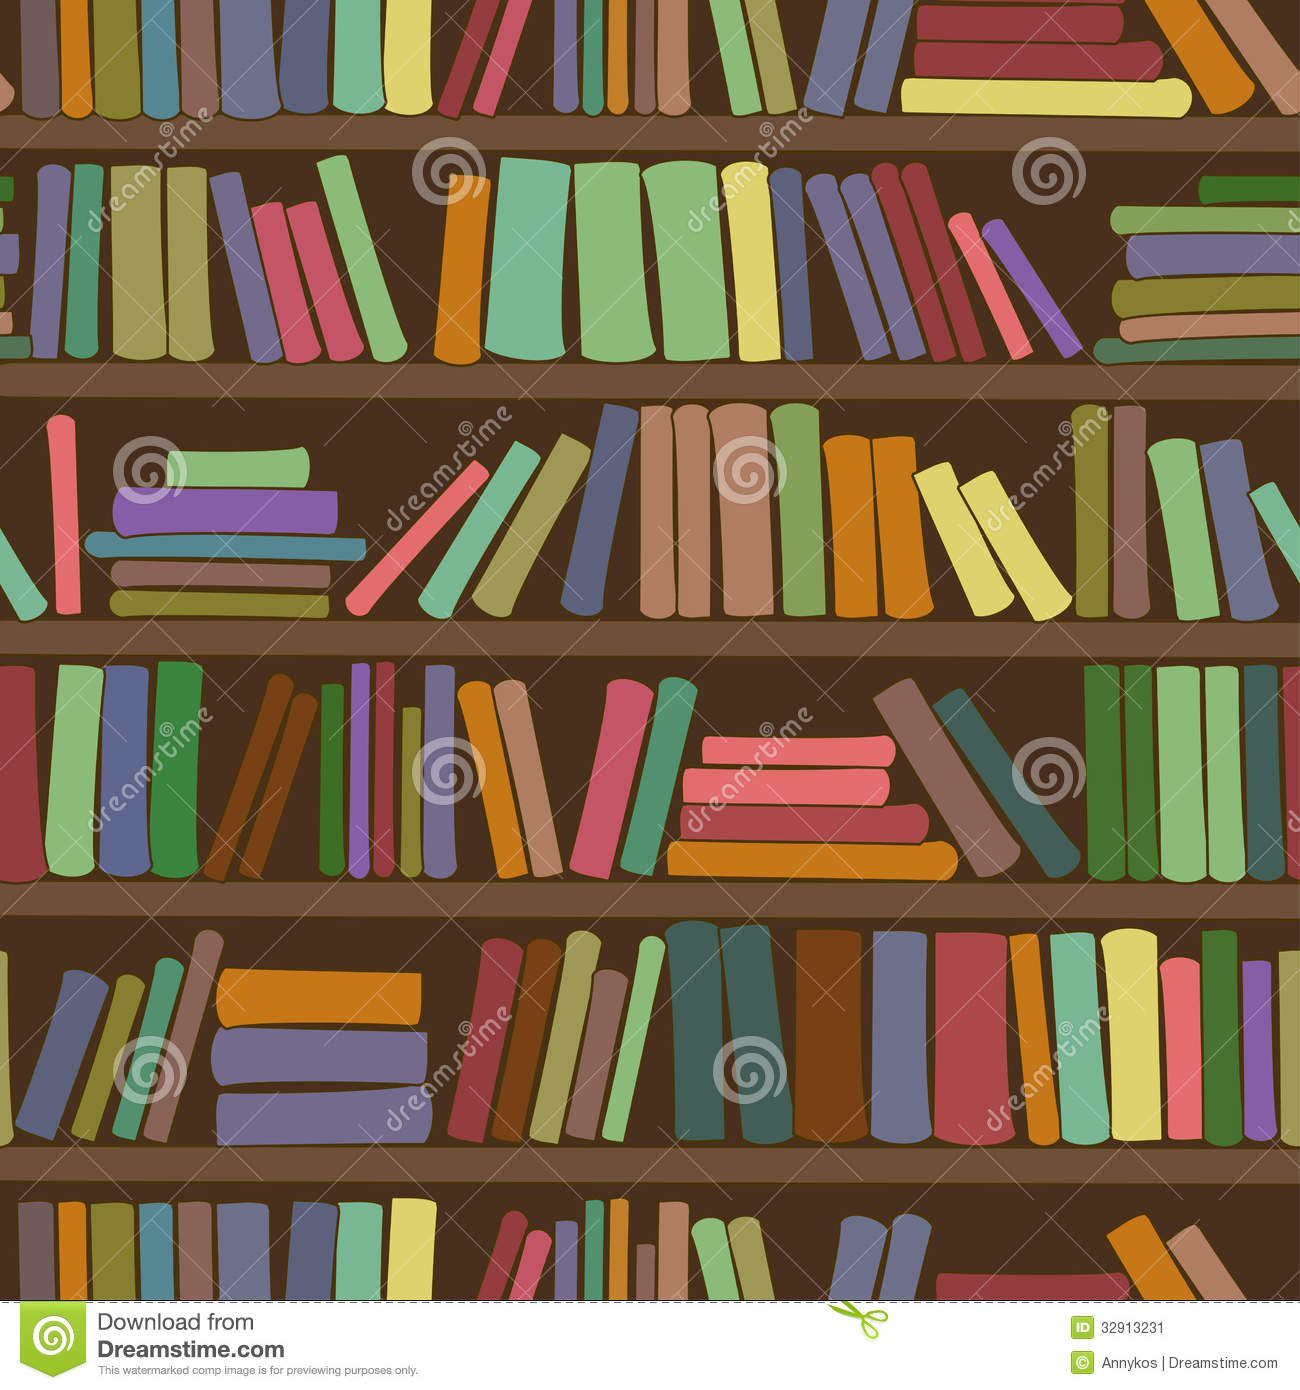 3d Bookcase Wallpaper Seamless Pattern Of Bookshelf With Books Stock Image